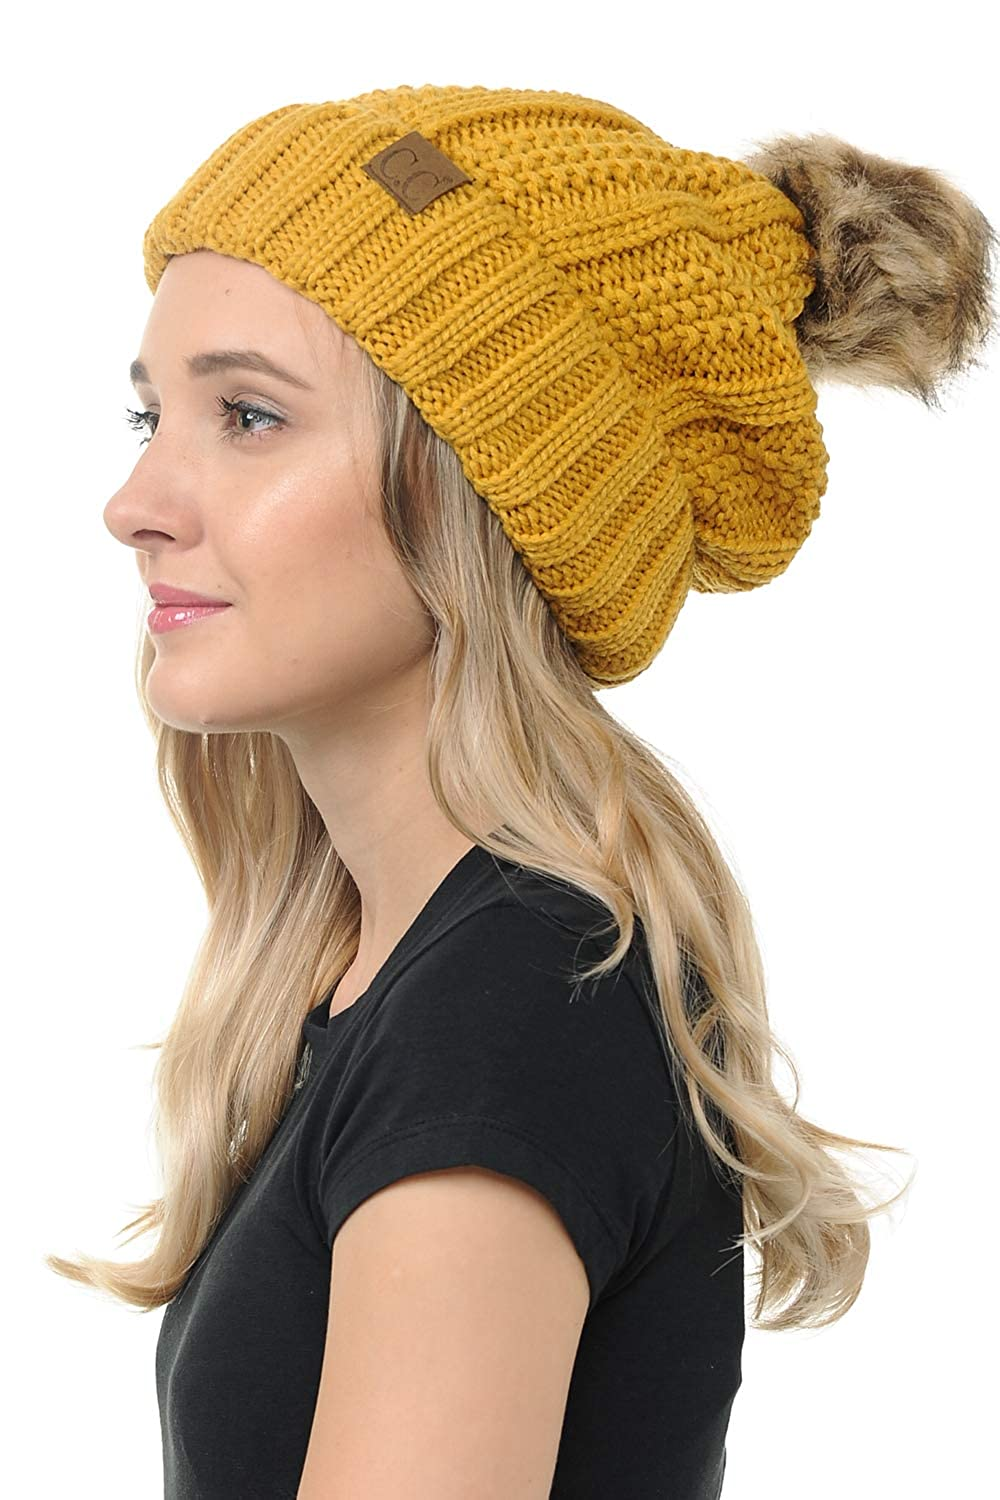 Thick Beanie Hats for Women /& Men Mustard BYSUMMER C.C Cable Knit Beanie with Faux Fur Pom Soft Warm